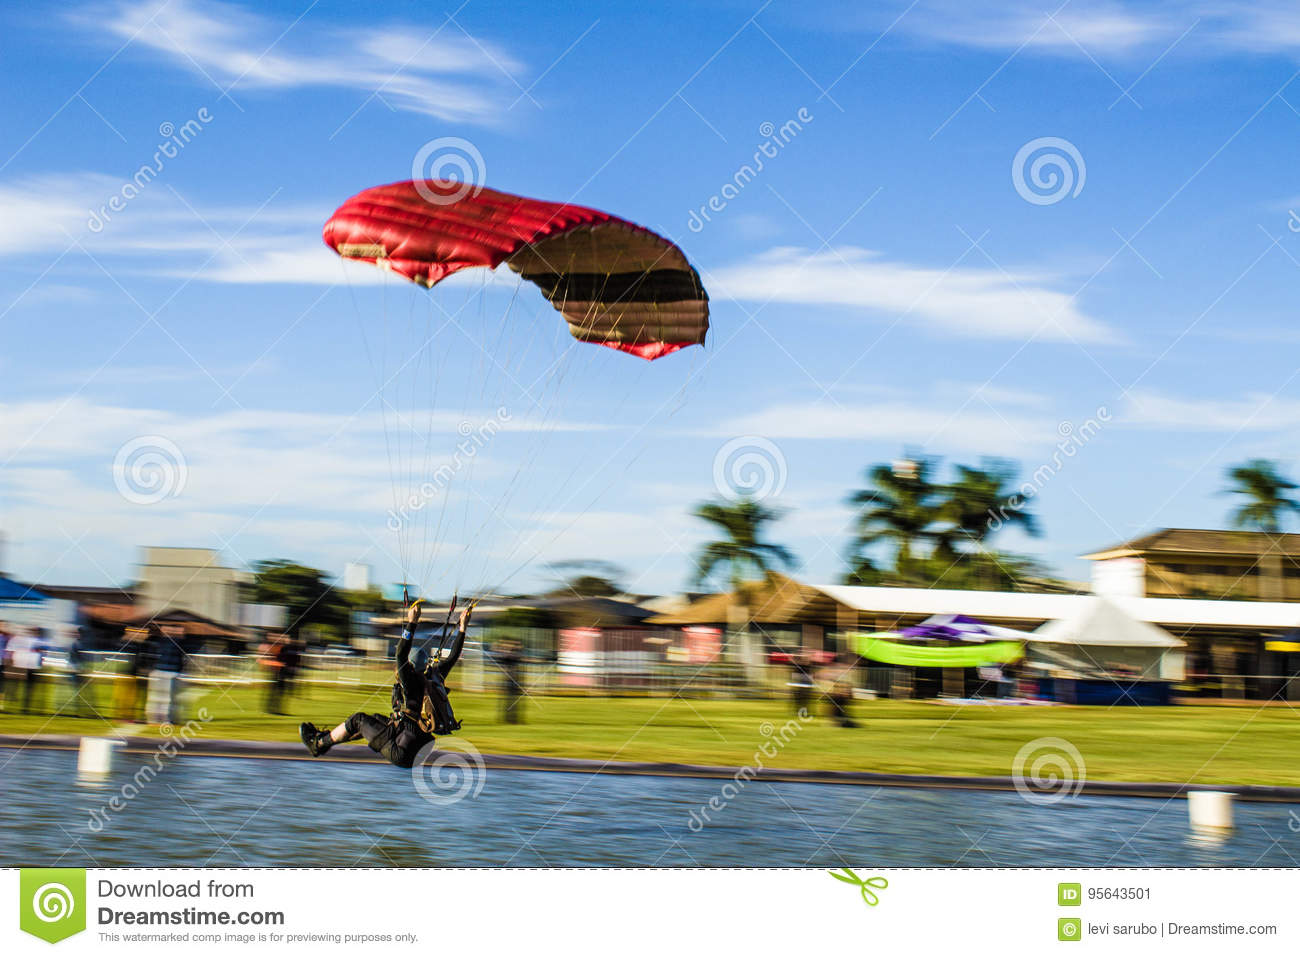 Parachute landing in the water.